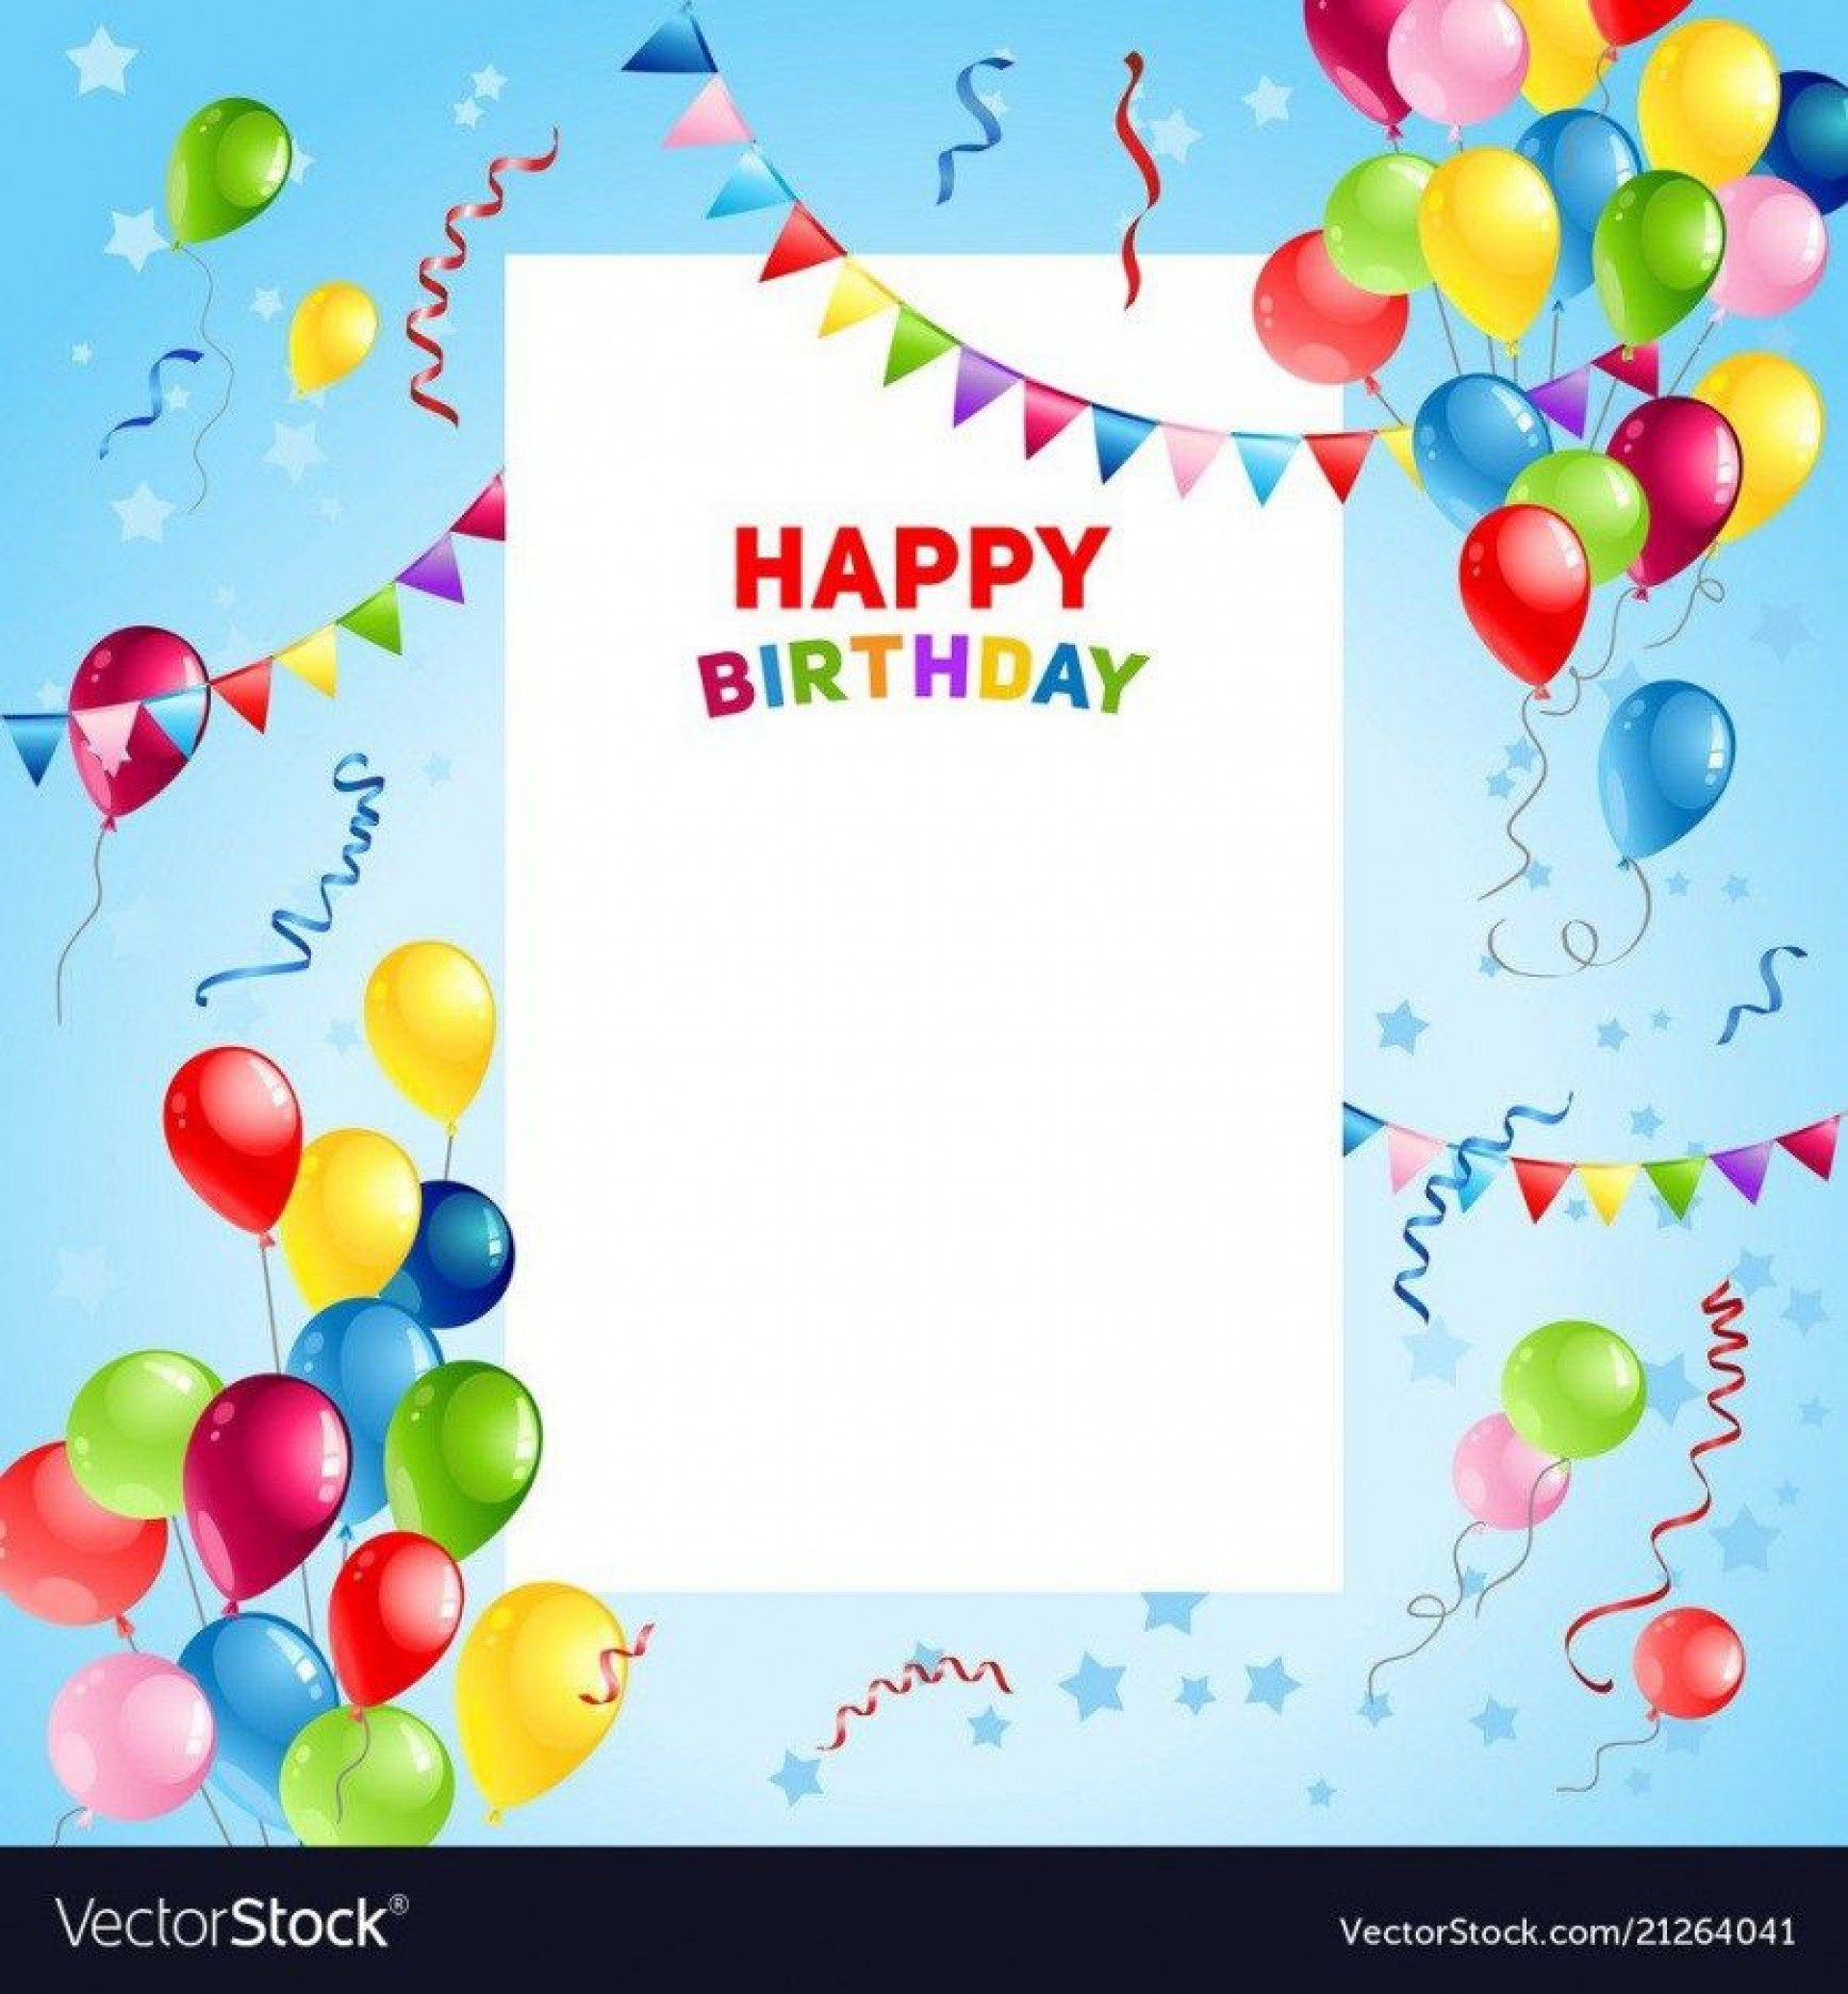 008 Awful Birthday Card Template For Microsoft Word Picture  Free Greeting Layout1920